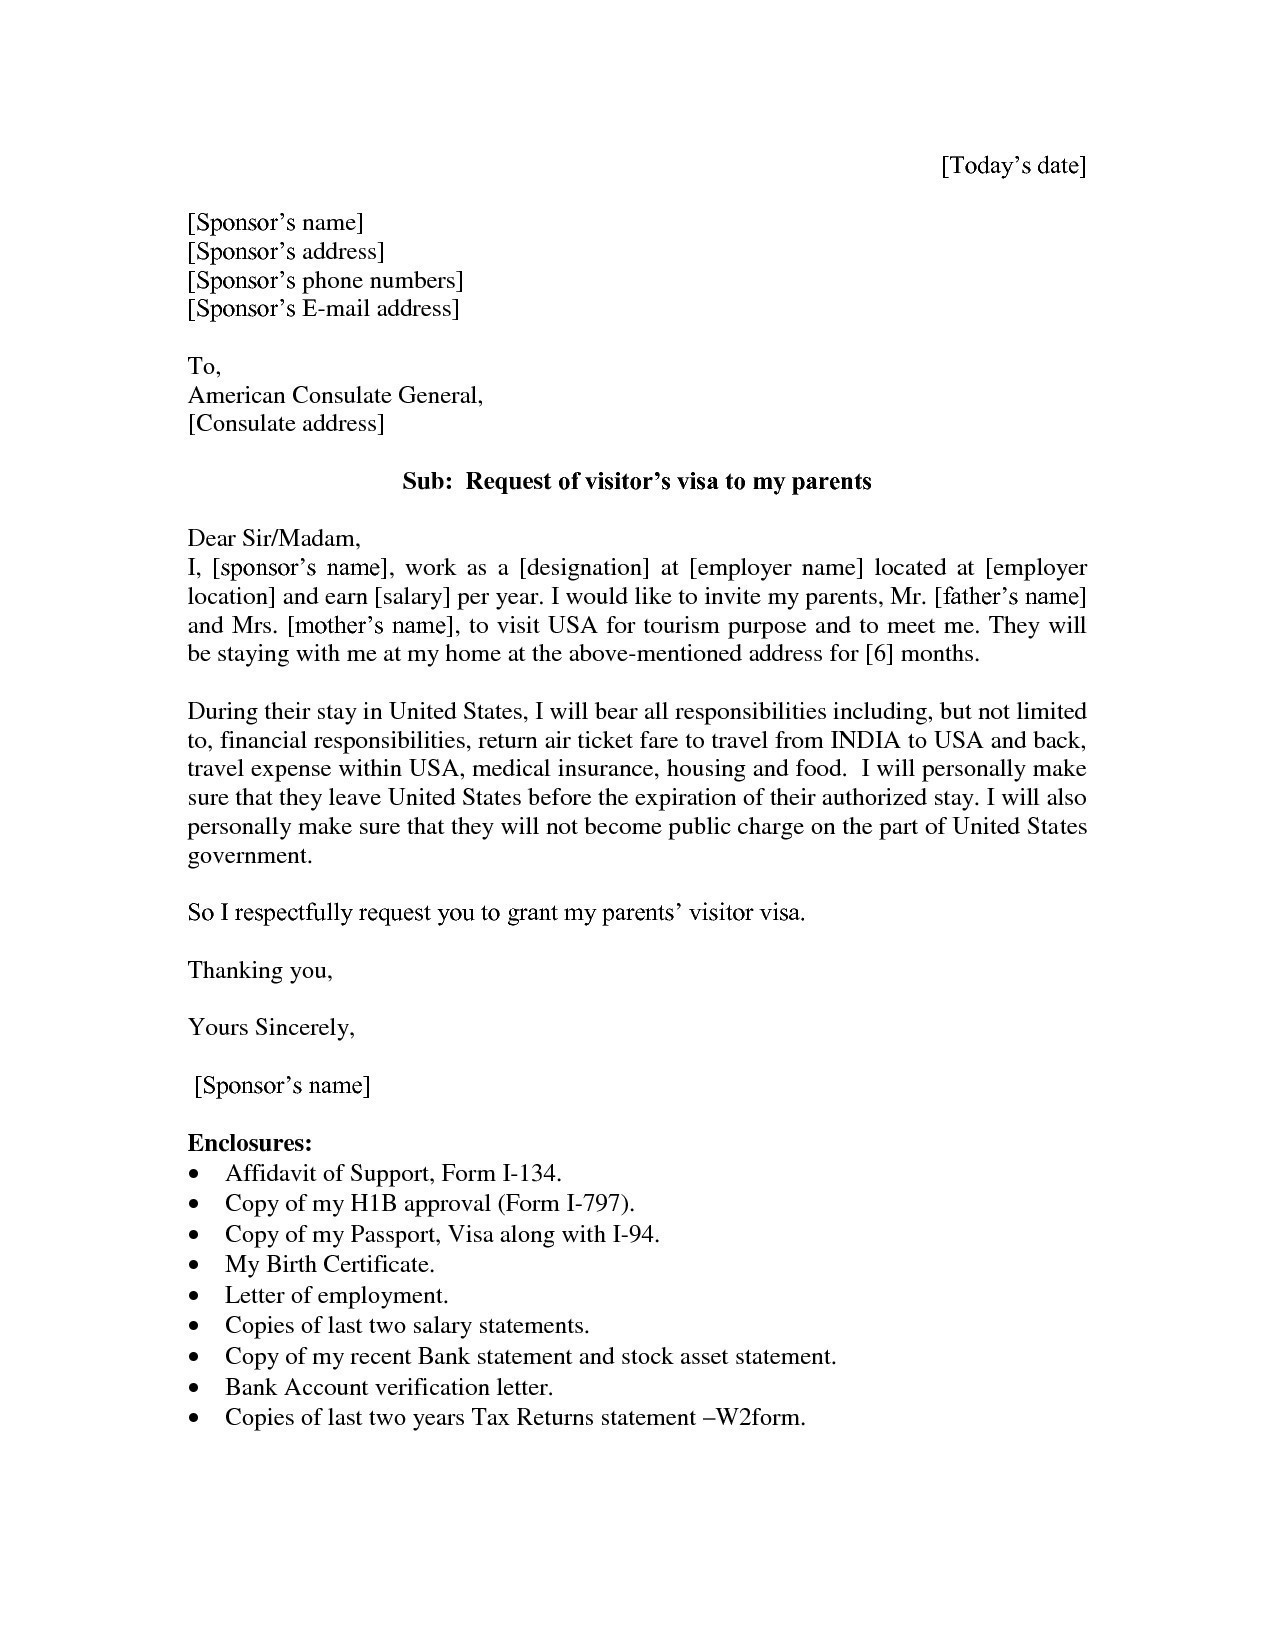 School Sponsorship Letter Template - Employment Certificate Template for Visa Copy Sample Authorization